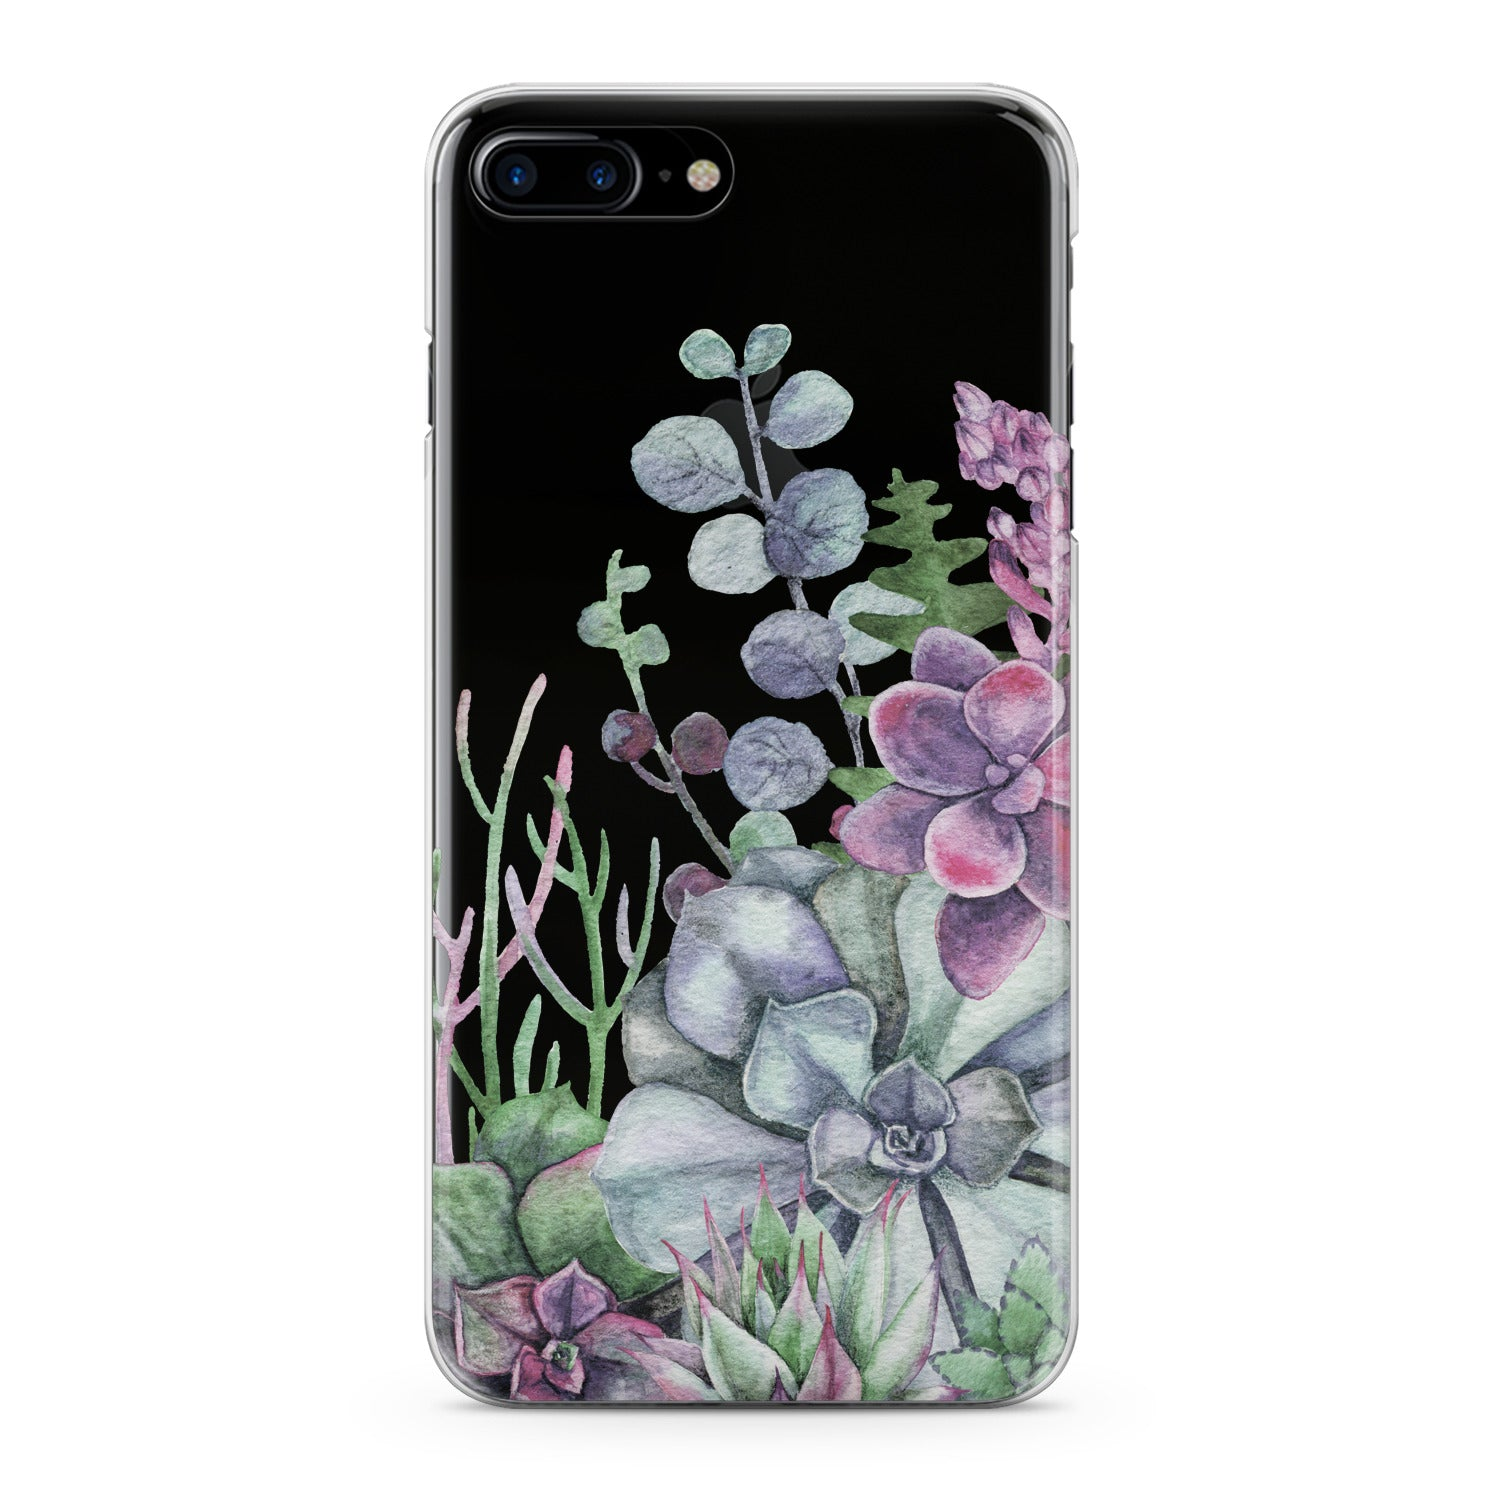 Lex Altern Flowers Succulent Phone Case for your iPhone & Android phone.